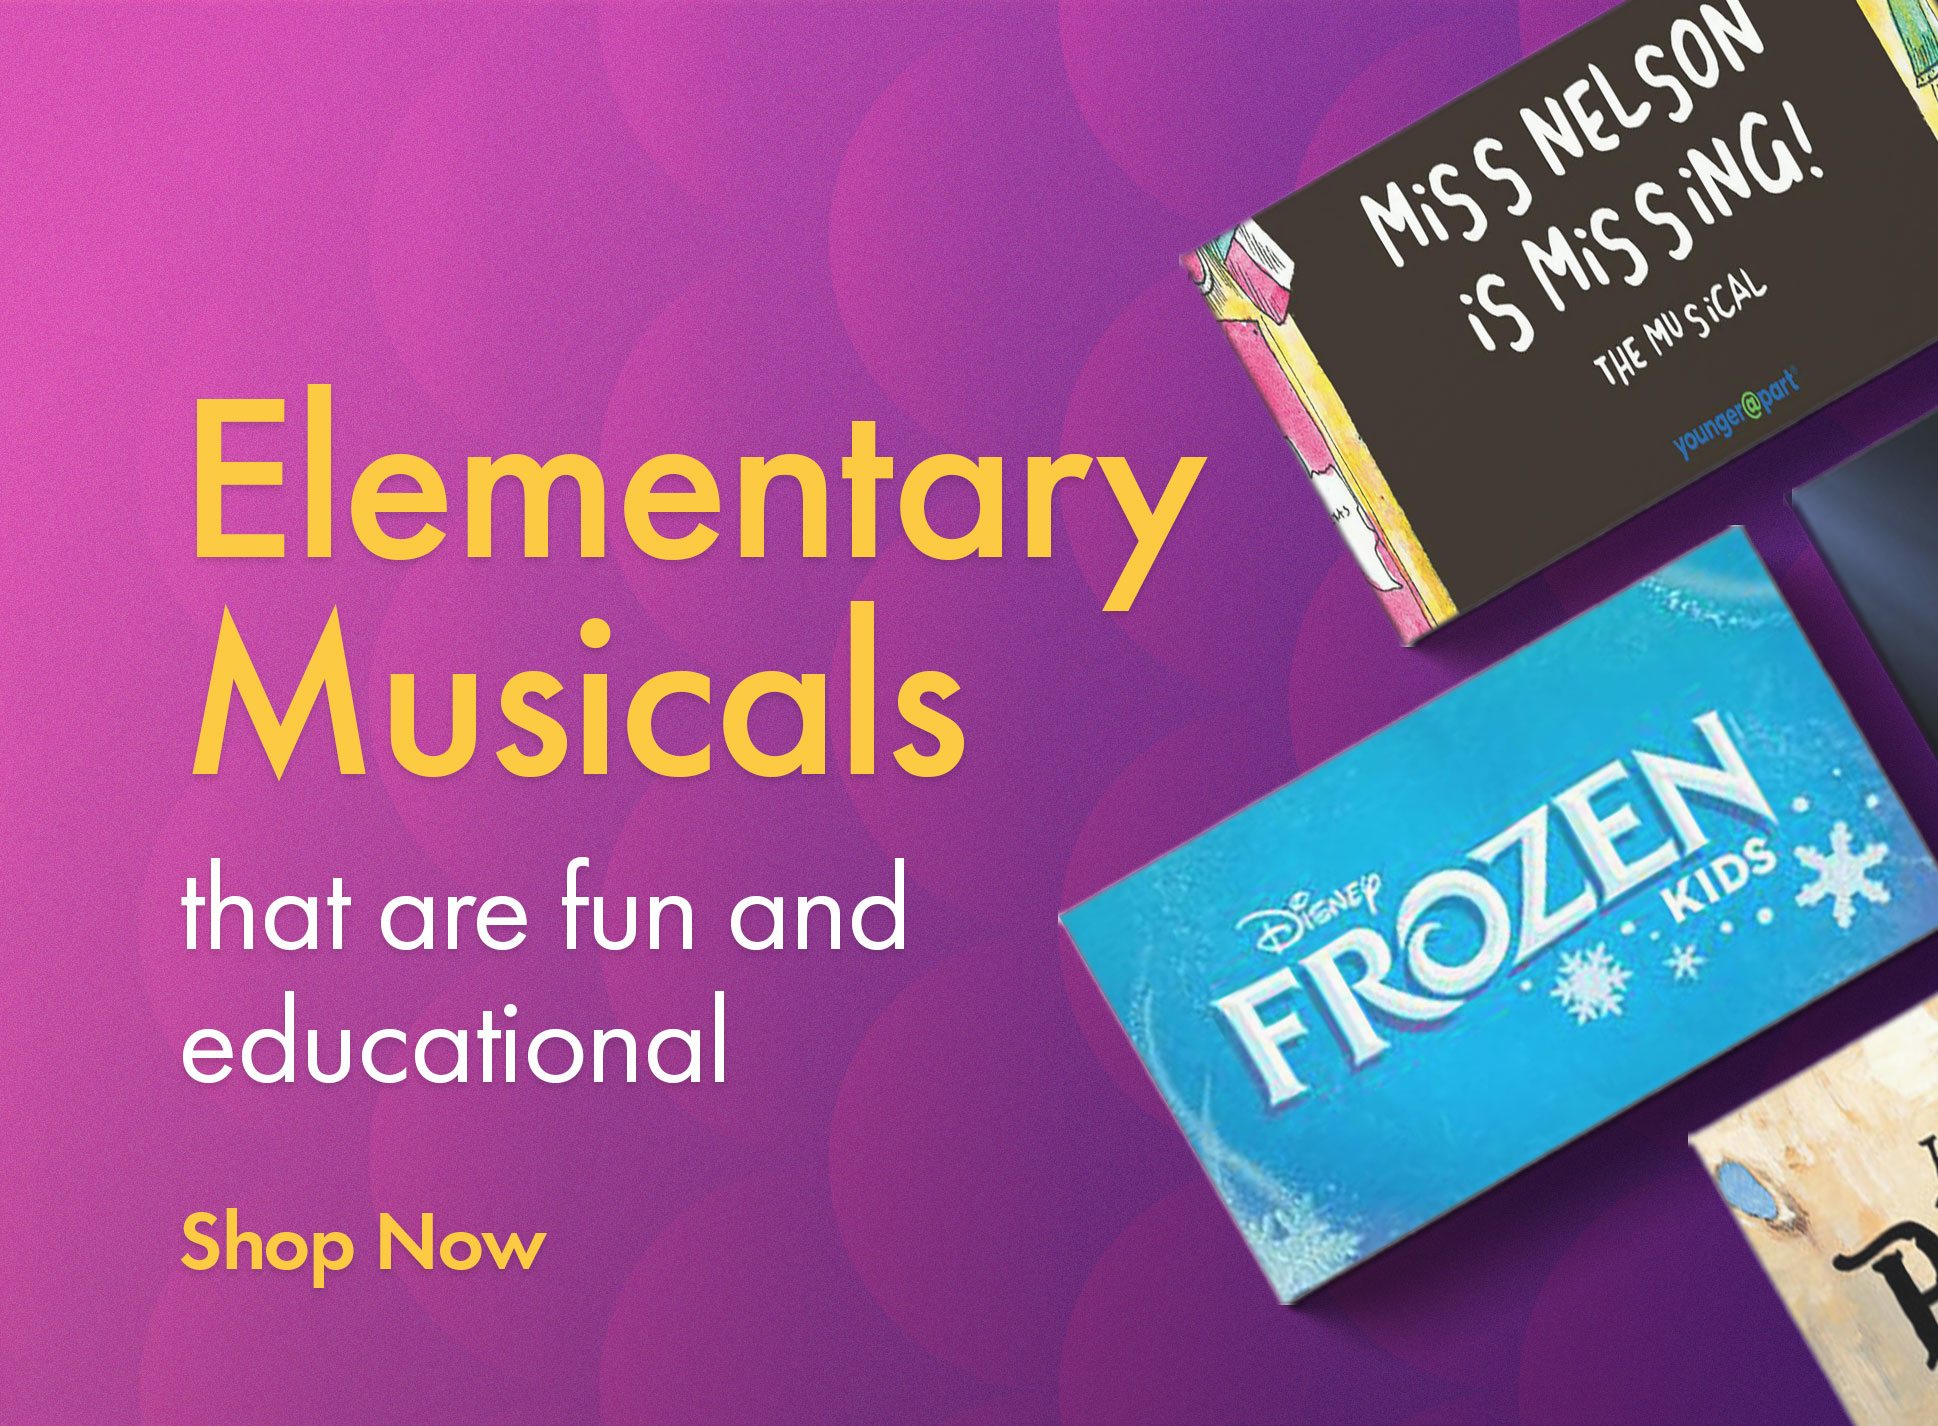 Elementary musicals that are fund and educational. Shop now!